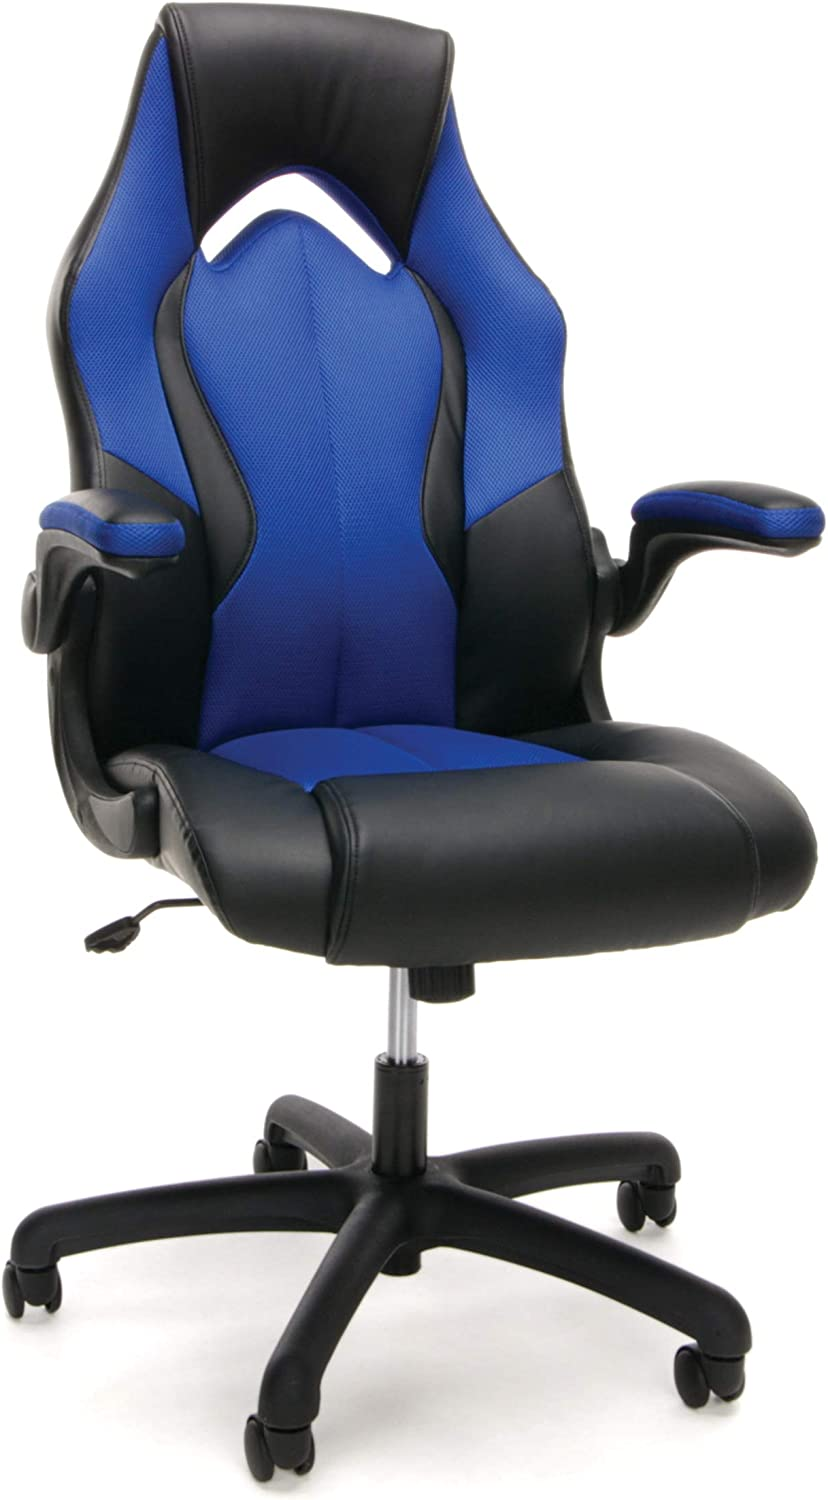 OFM Essentials High-Back Racing Style Gaming Chair and Office Chair